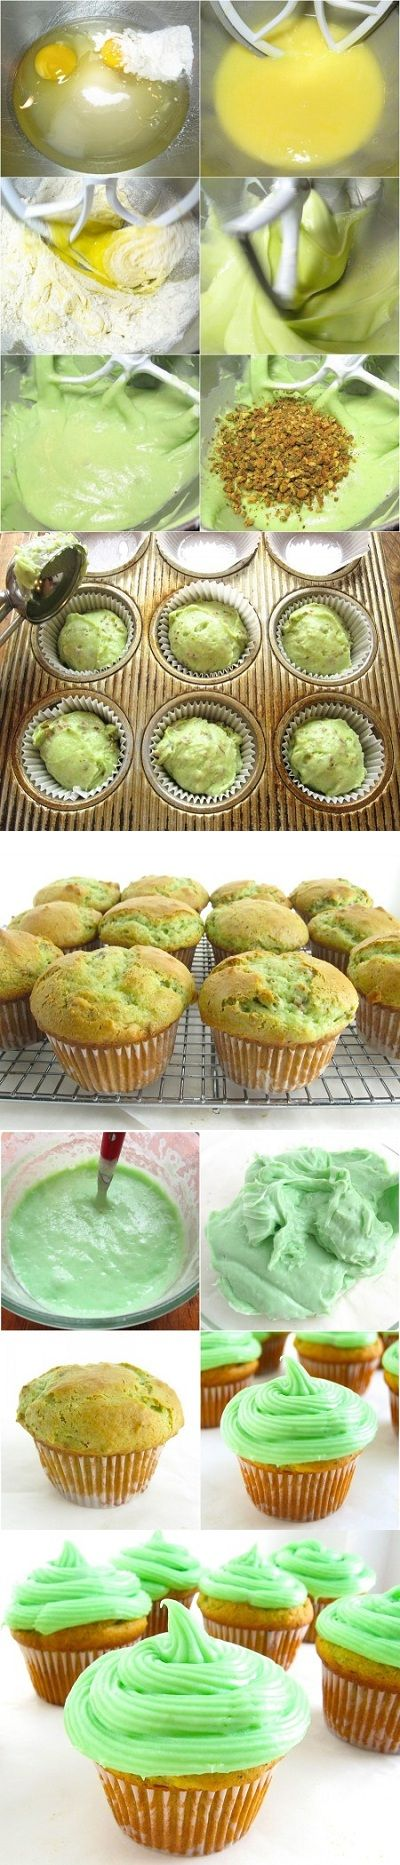 Pistachio Cupcakes-pistachio ice cream is my favorite!! I want to try these cupcakes, yum!